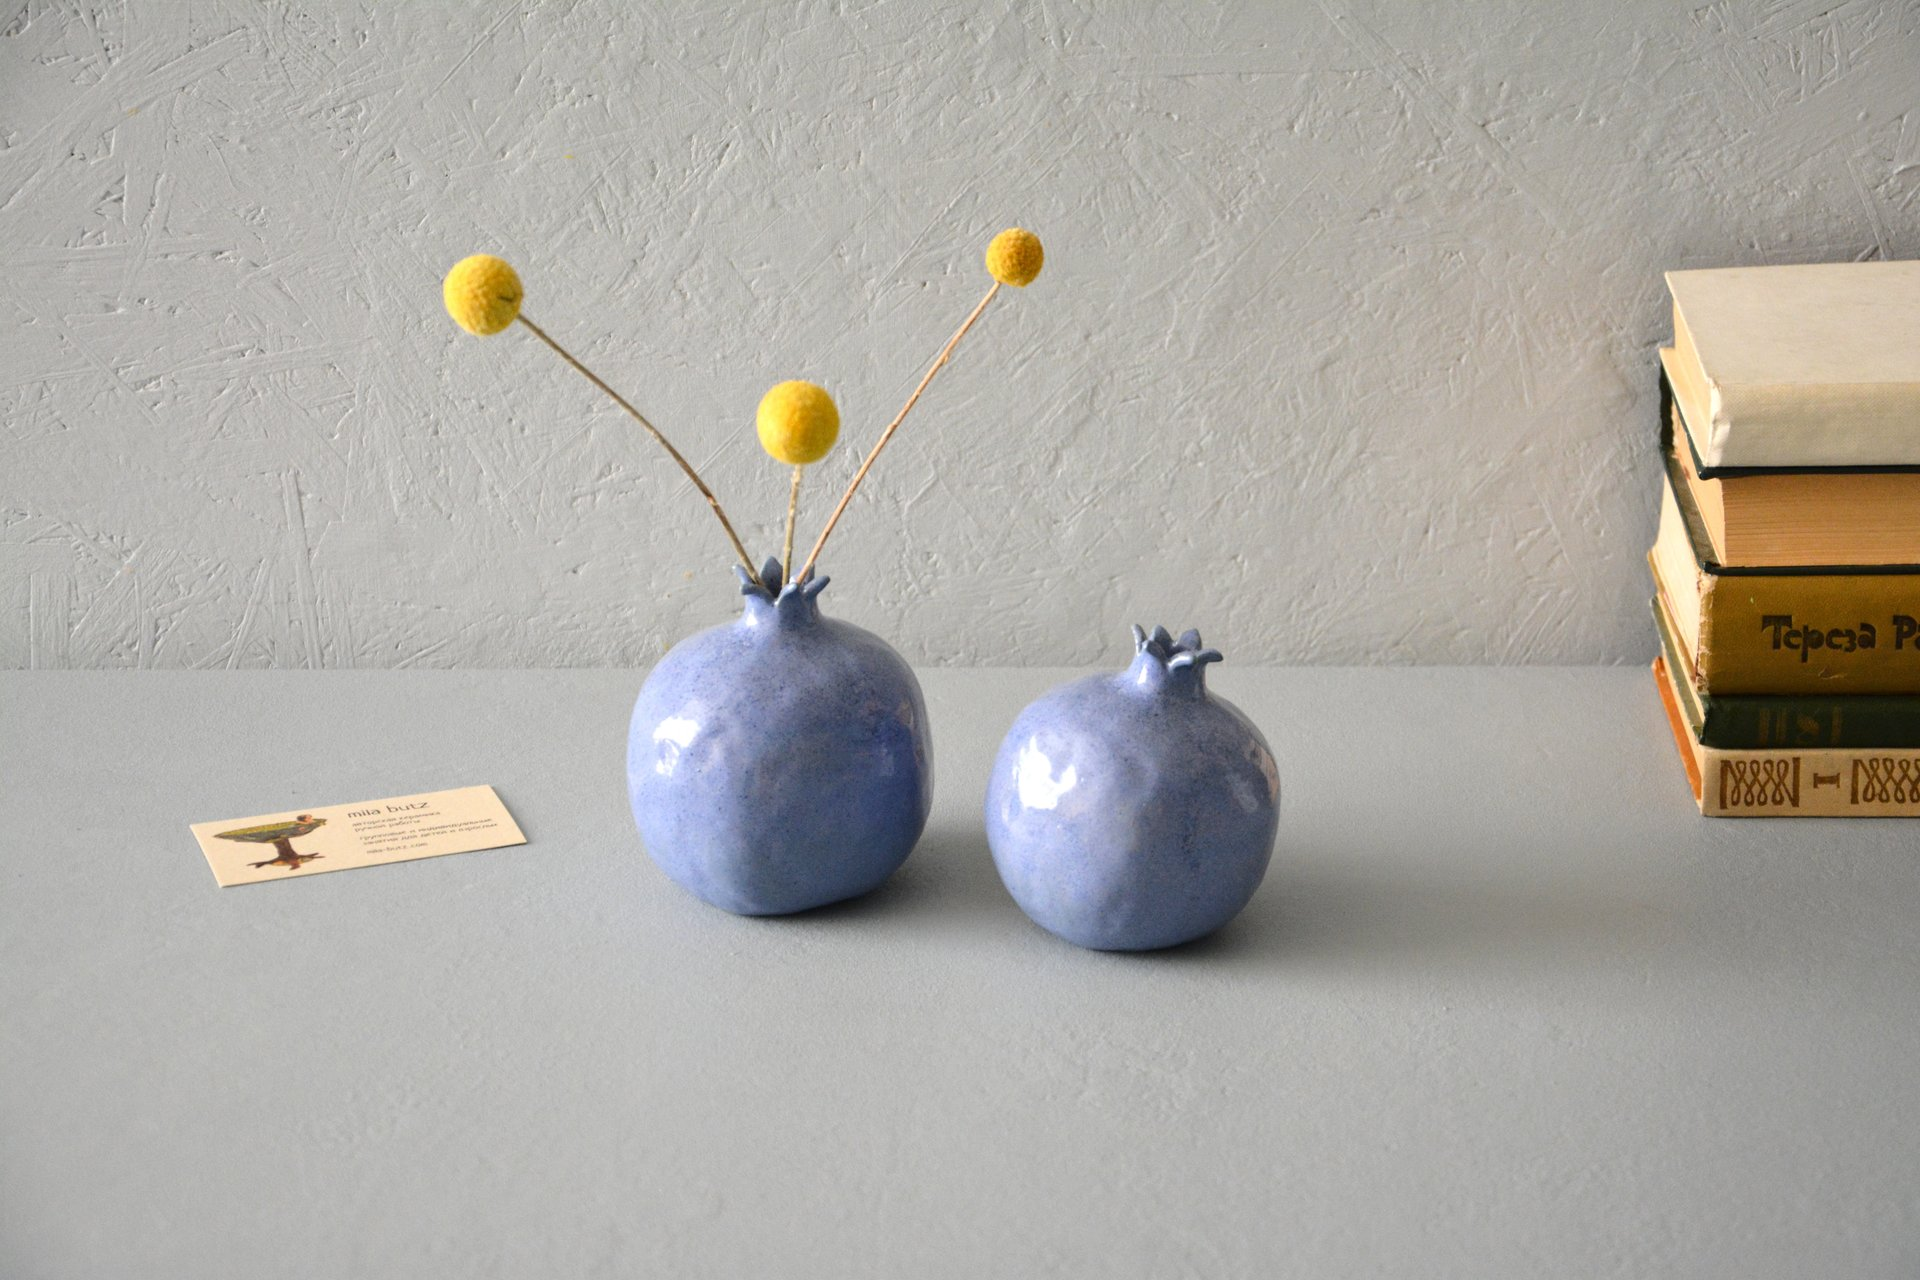 Two blue ceramic pomegranates, height - 10 cm, photo 3 of 5.